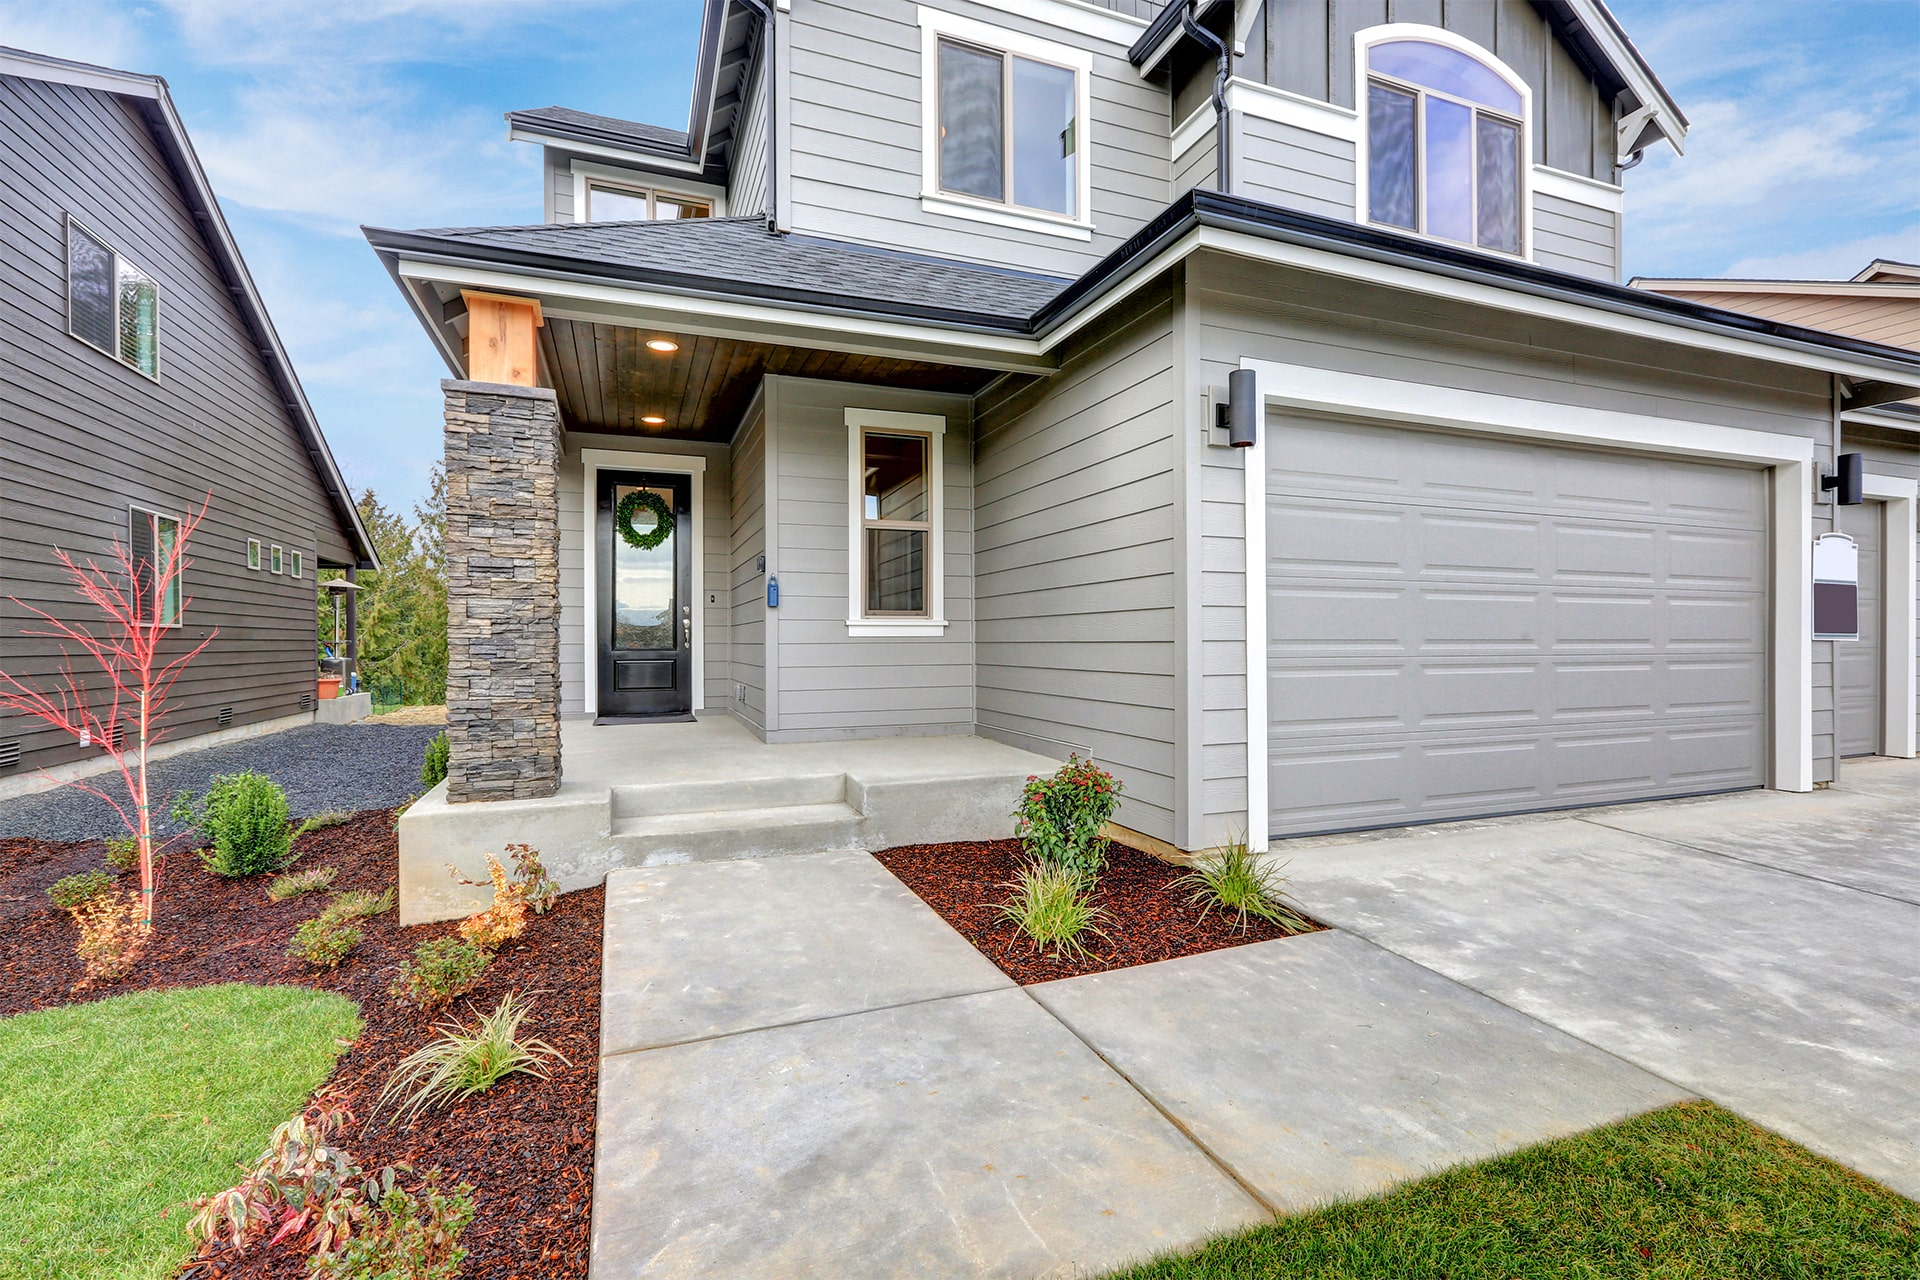 Rent To Own Homes In Tacoma Puyallup Jblm Houses For Lease In